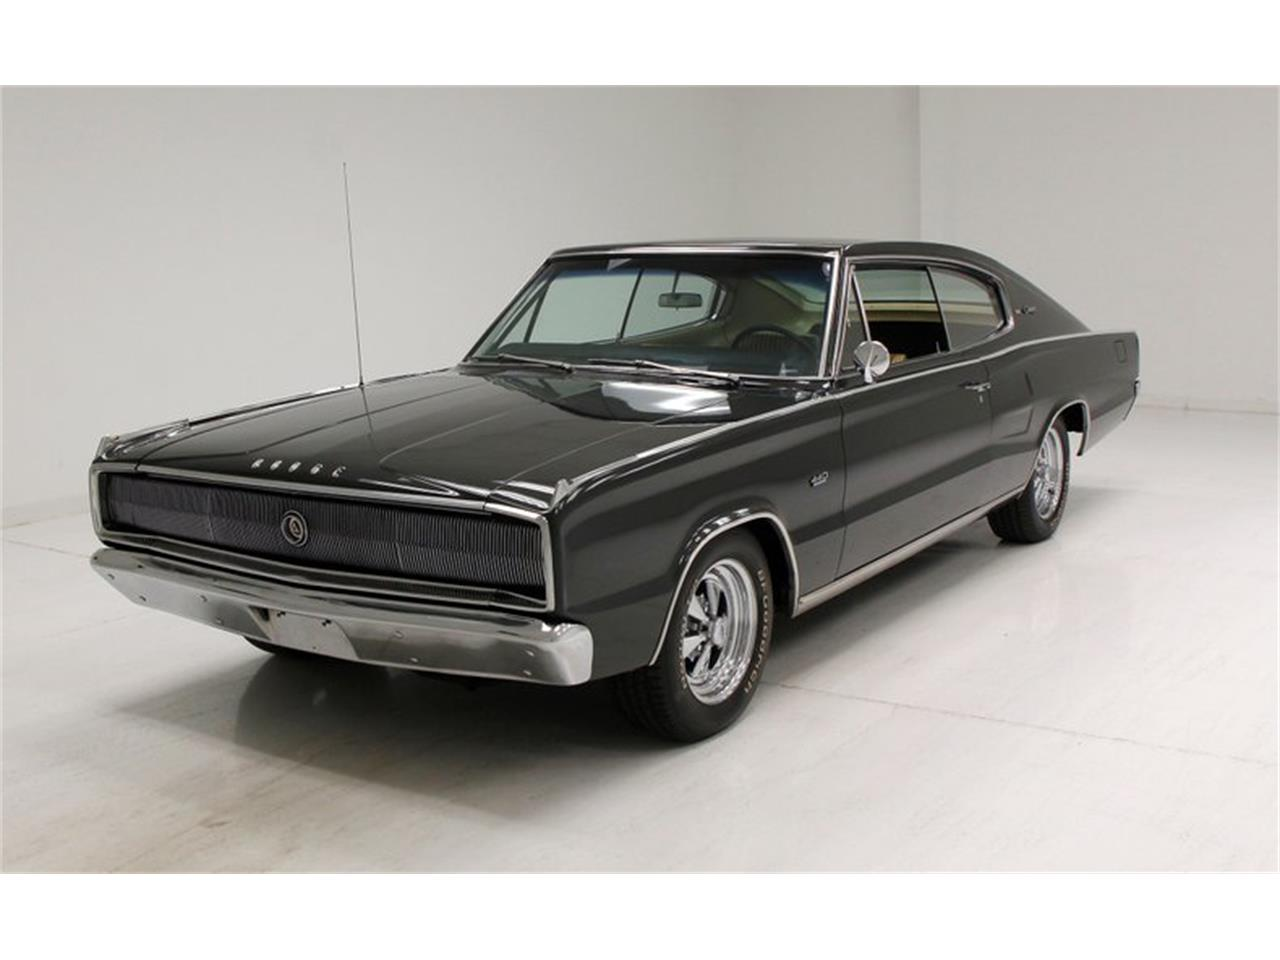 for sale 1967 dodge charger in morgantown, pennsylvania cars - morgantown, pa at geebo